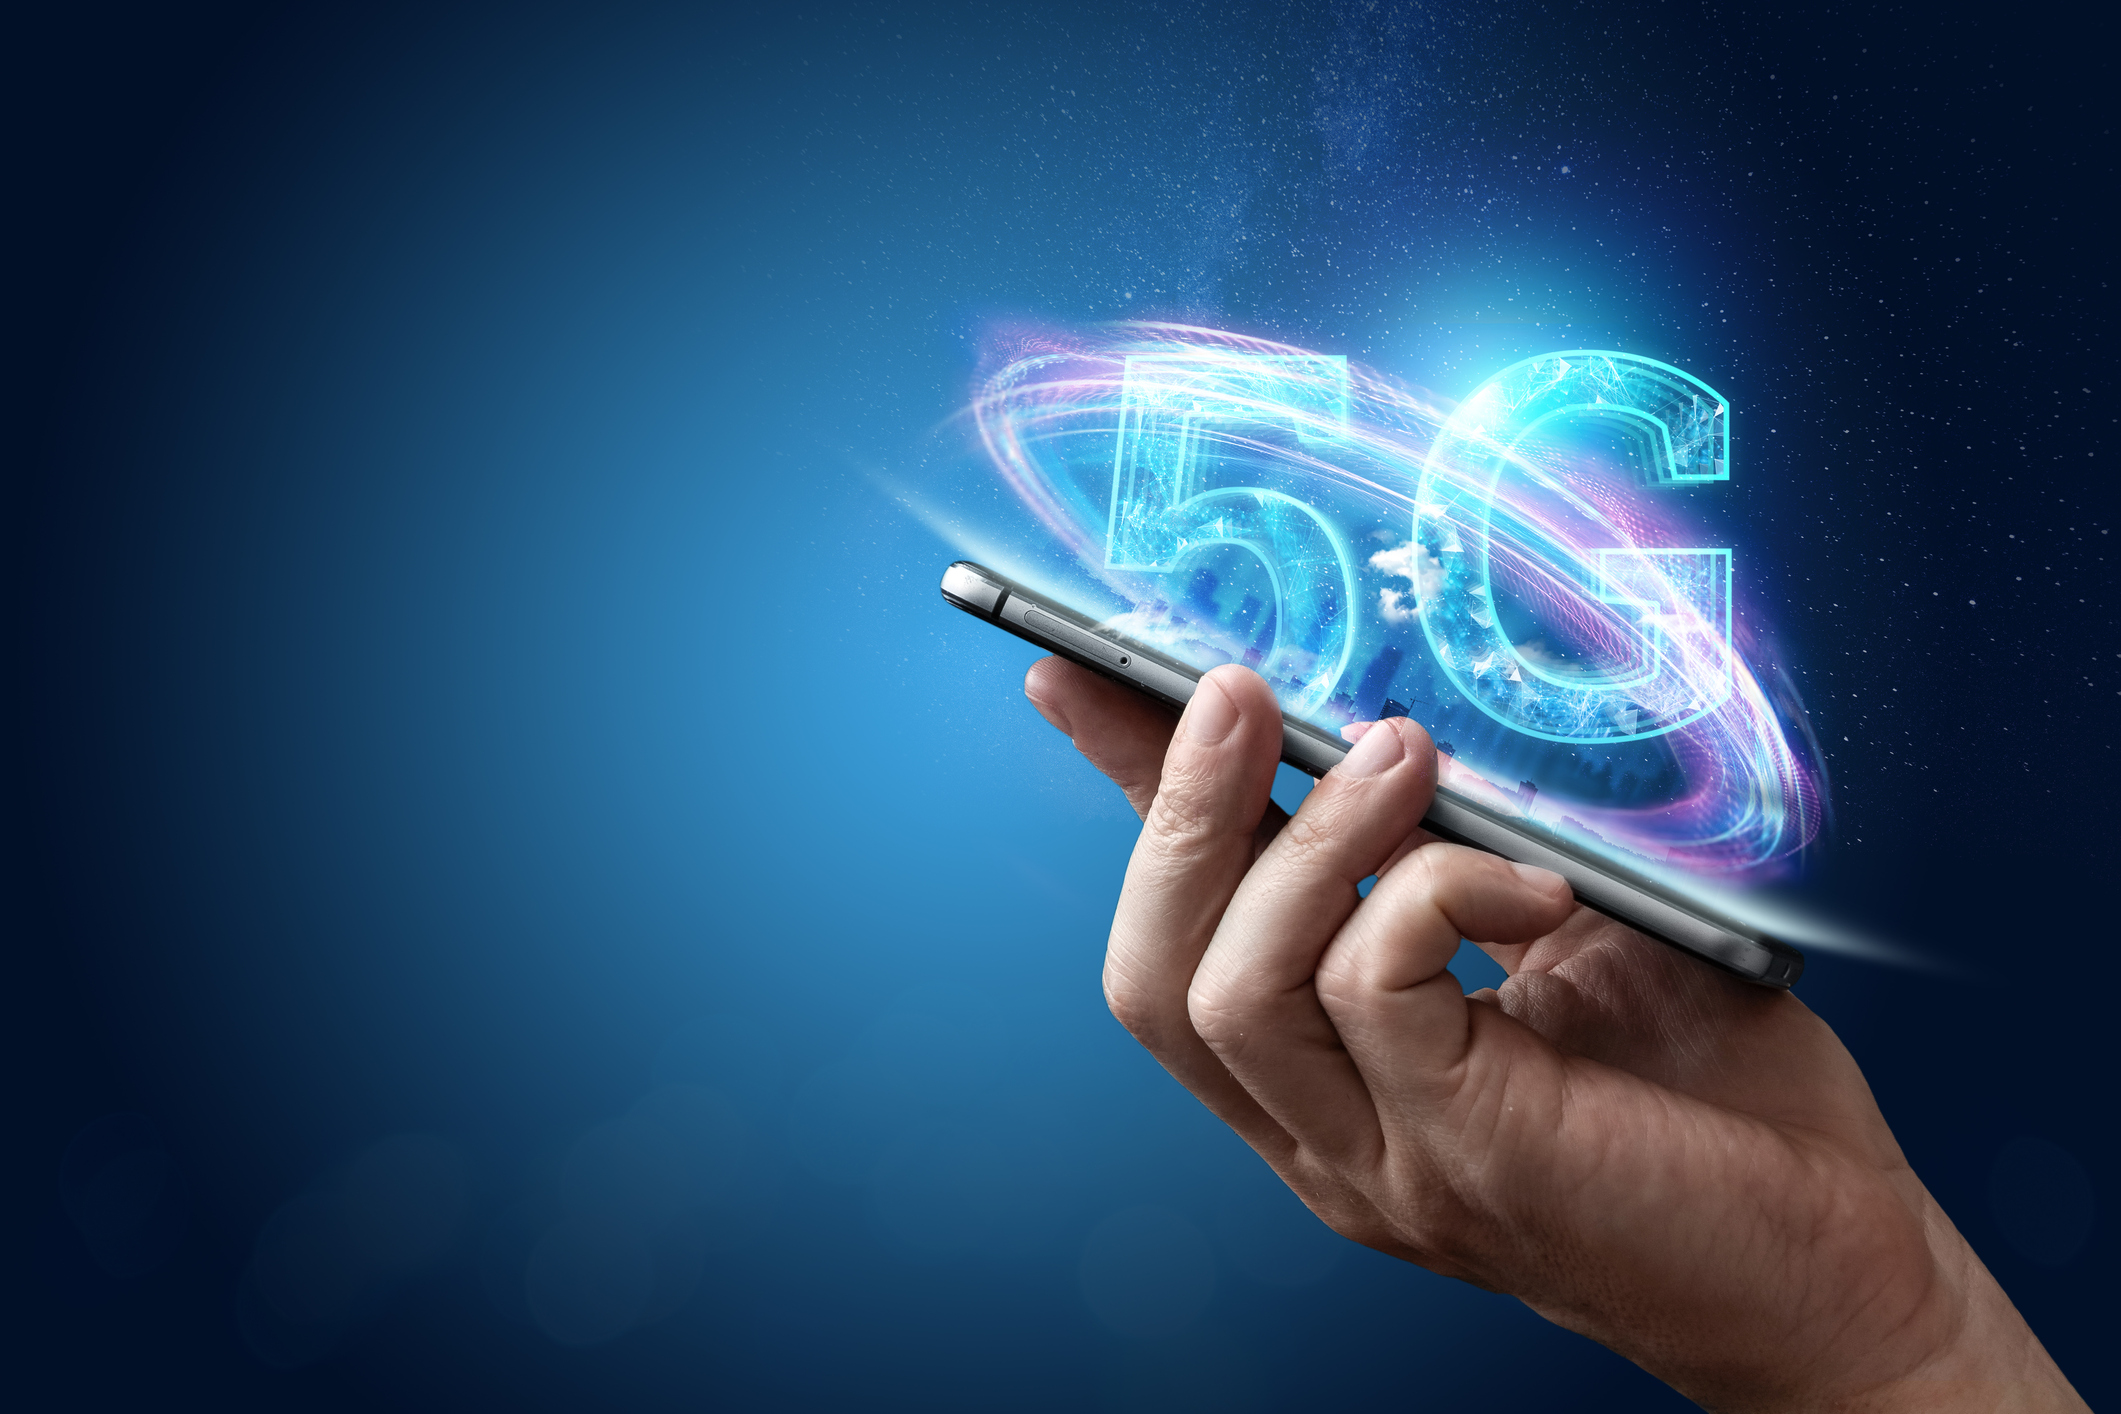 Private Cellular Networks Spend to Approach $12 Billion by 2023, Catalysed by 5G Capabilities